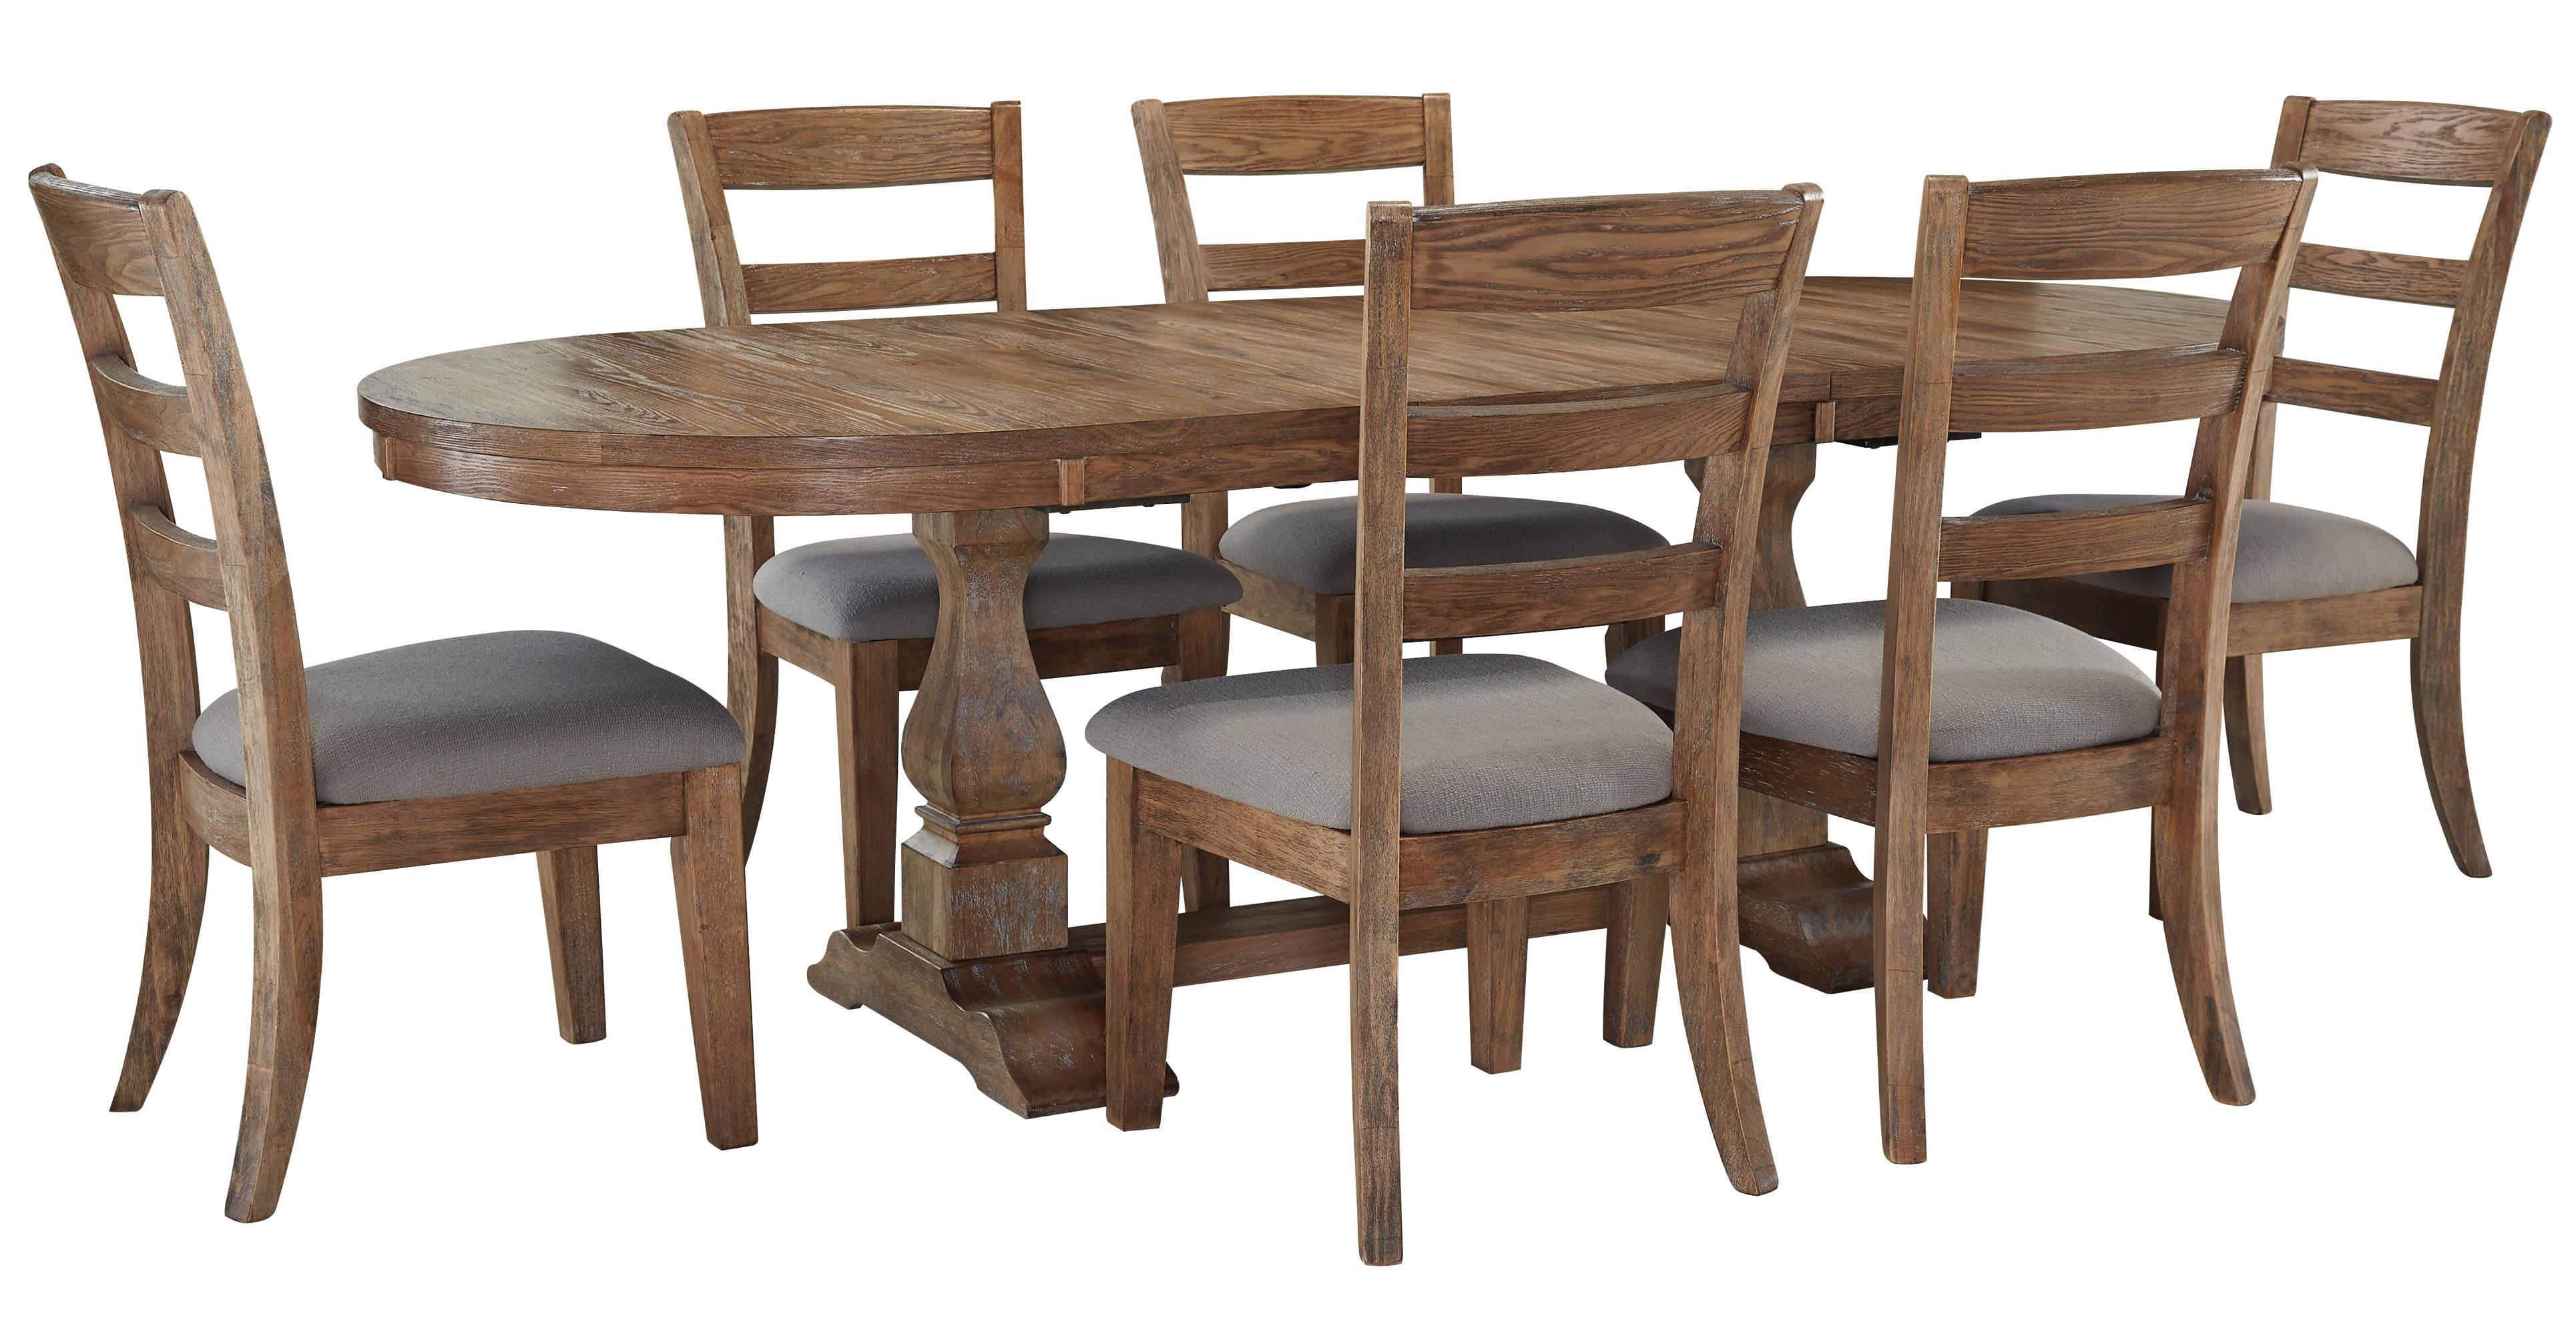 Signature Design by Ashley Danimore 7 Piece Dining Set with Oval Table - Item Number: D473-45B+T+6x01